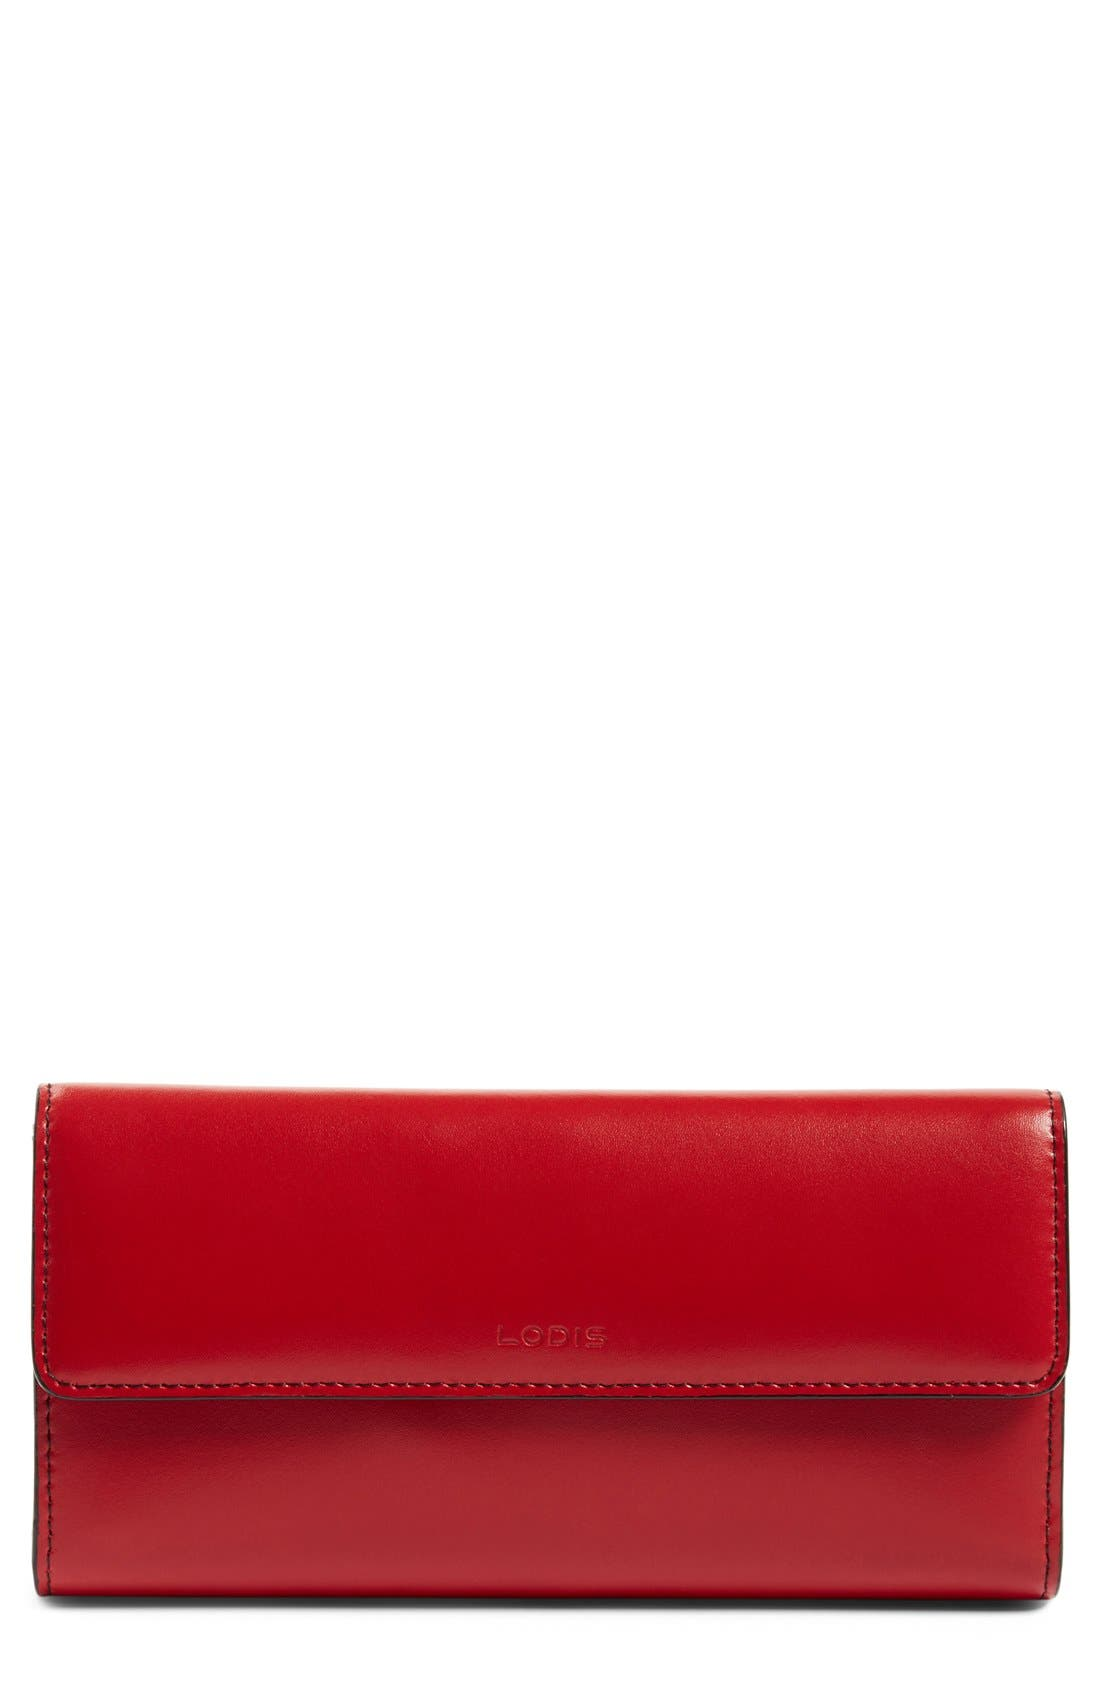 LODIS Audrey RFID Leather Checkbook Clutch Wallet